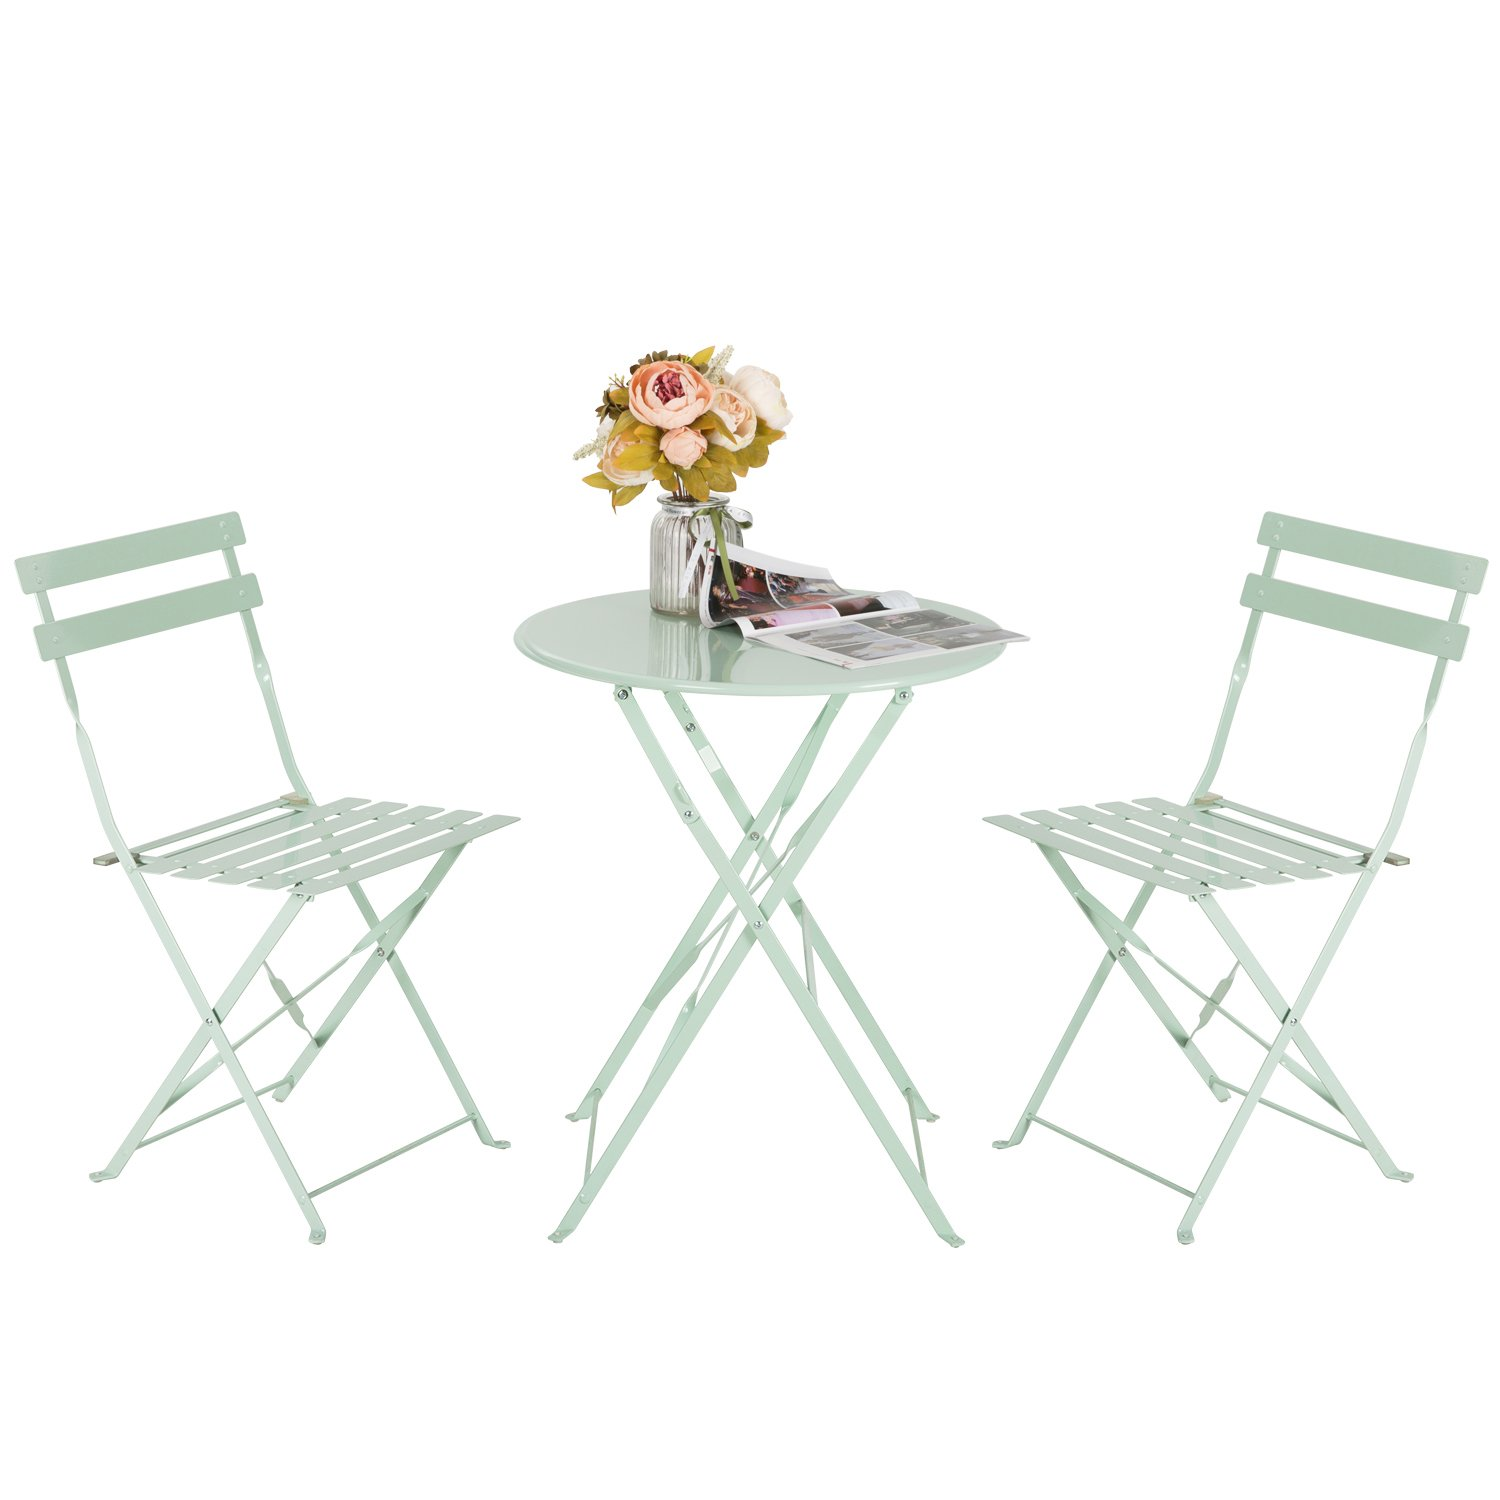 Marble Field Patio 3-Piece Folding Bistro Furniture Set, Outdoor&Balcony Table and Chairs Sets, Light Green by Marble Field